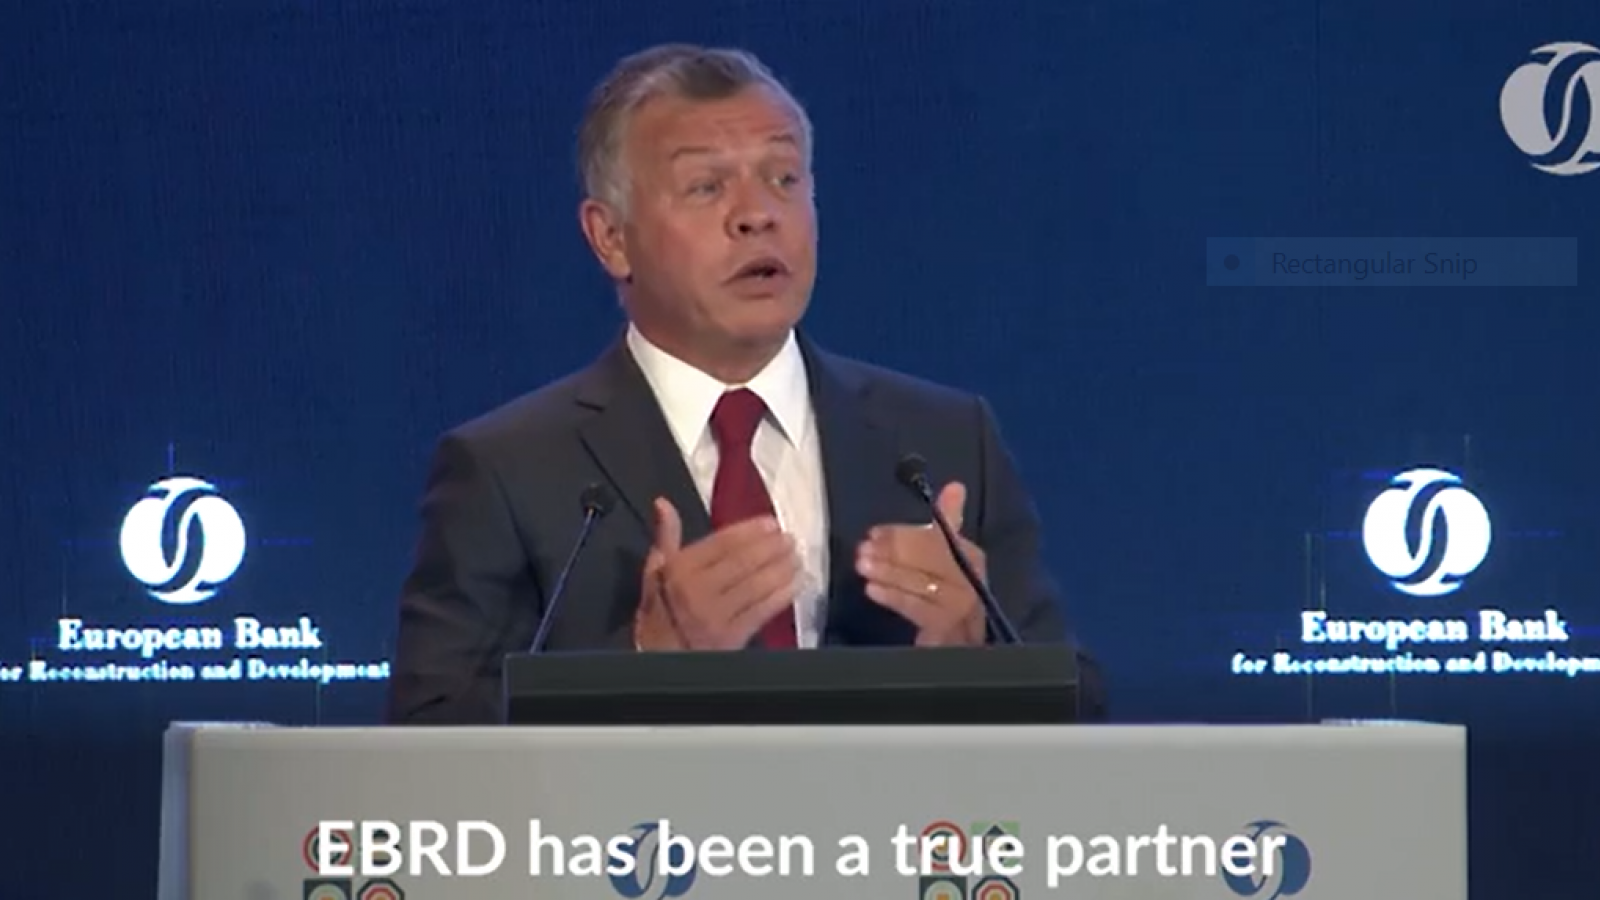 His Majesty King Abdullah II at the EBRD annual 2018 meeting in Jordan